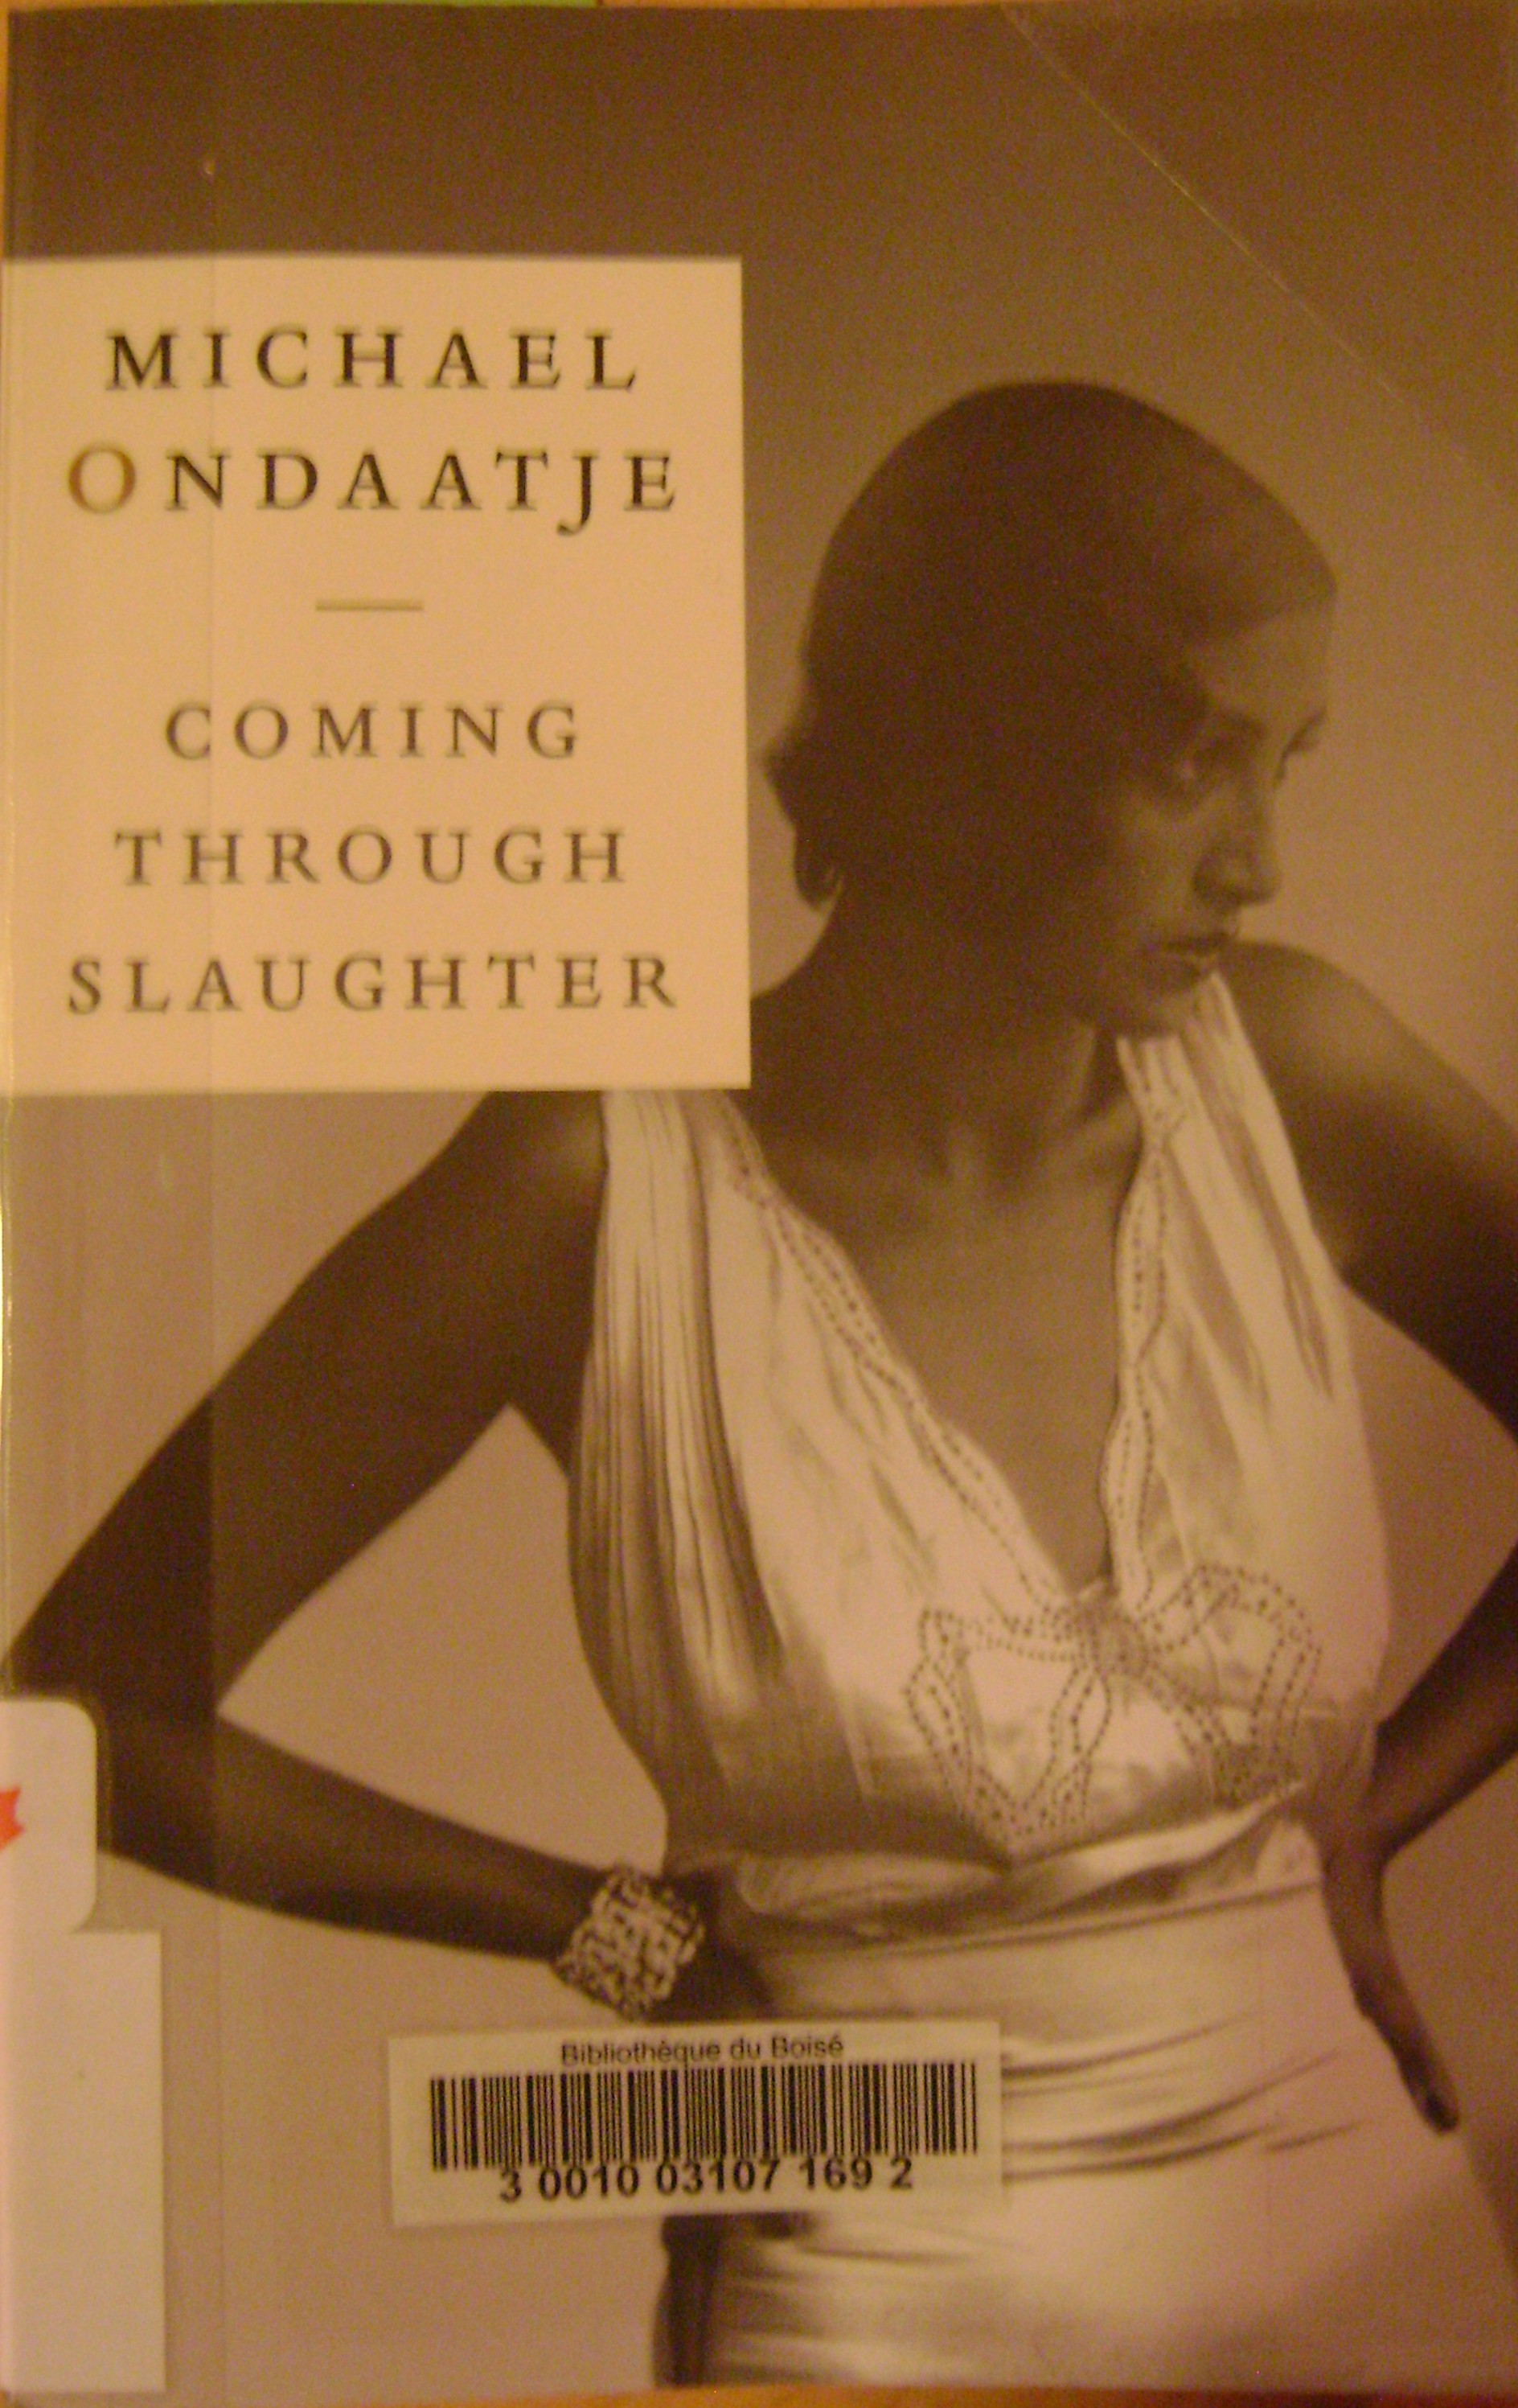 michael ondaatjes coming through slaughter Join us for a special live performance by al strong, leader of  (with museum  staff) of michael ondaatje's book, coming through slaughter.